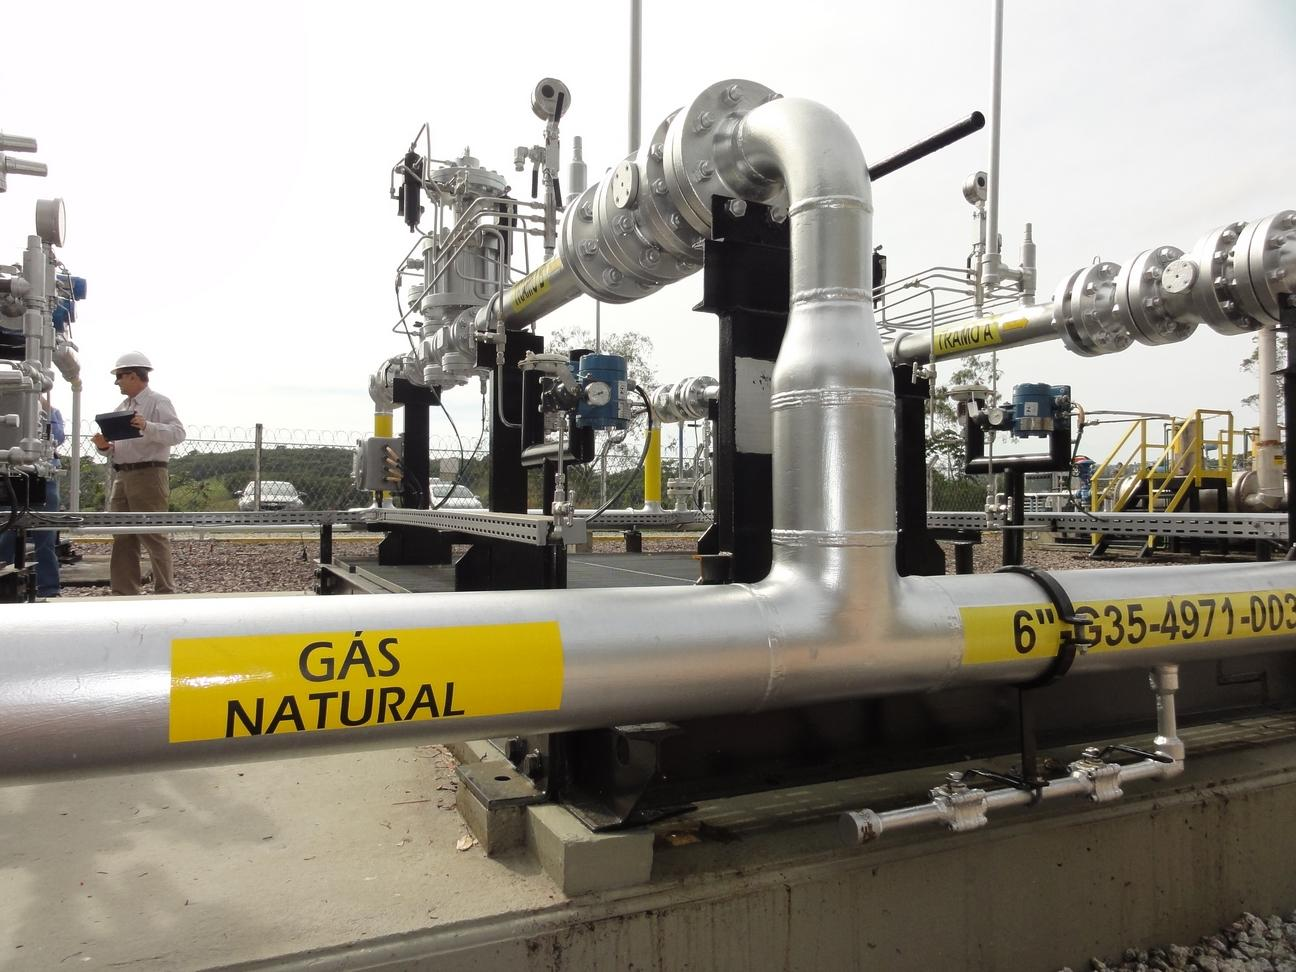 Abeg s termogera o impulsiona consumo de g s natural for Gas ciudad o gas natural